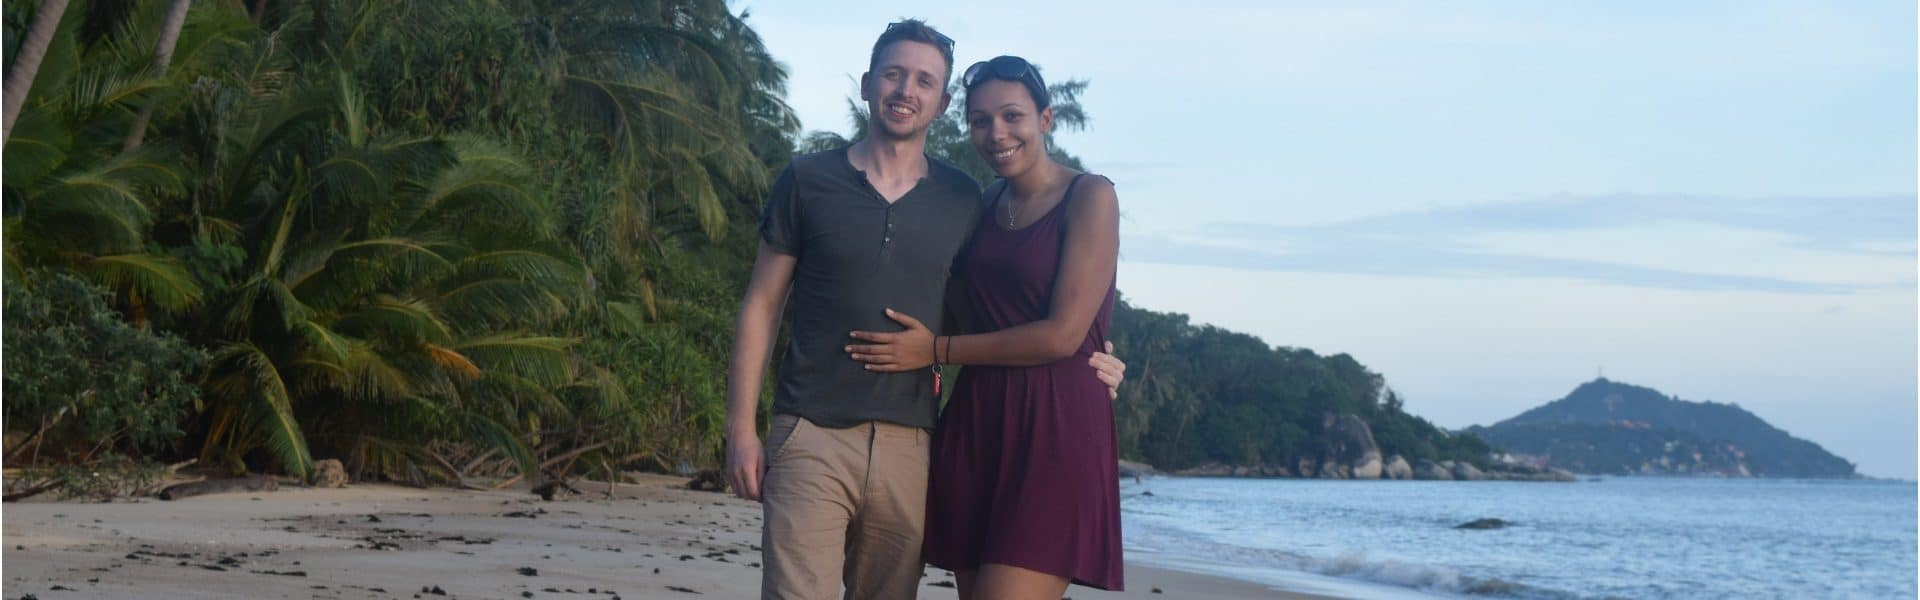 A man and a woman standing together on a beach